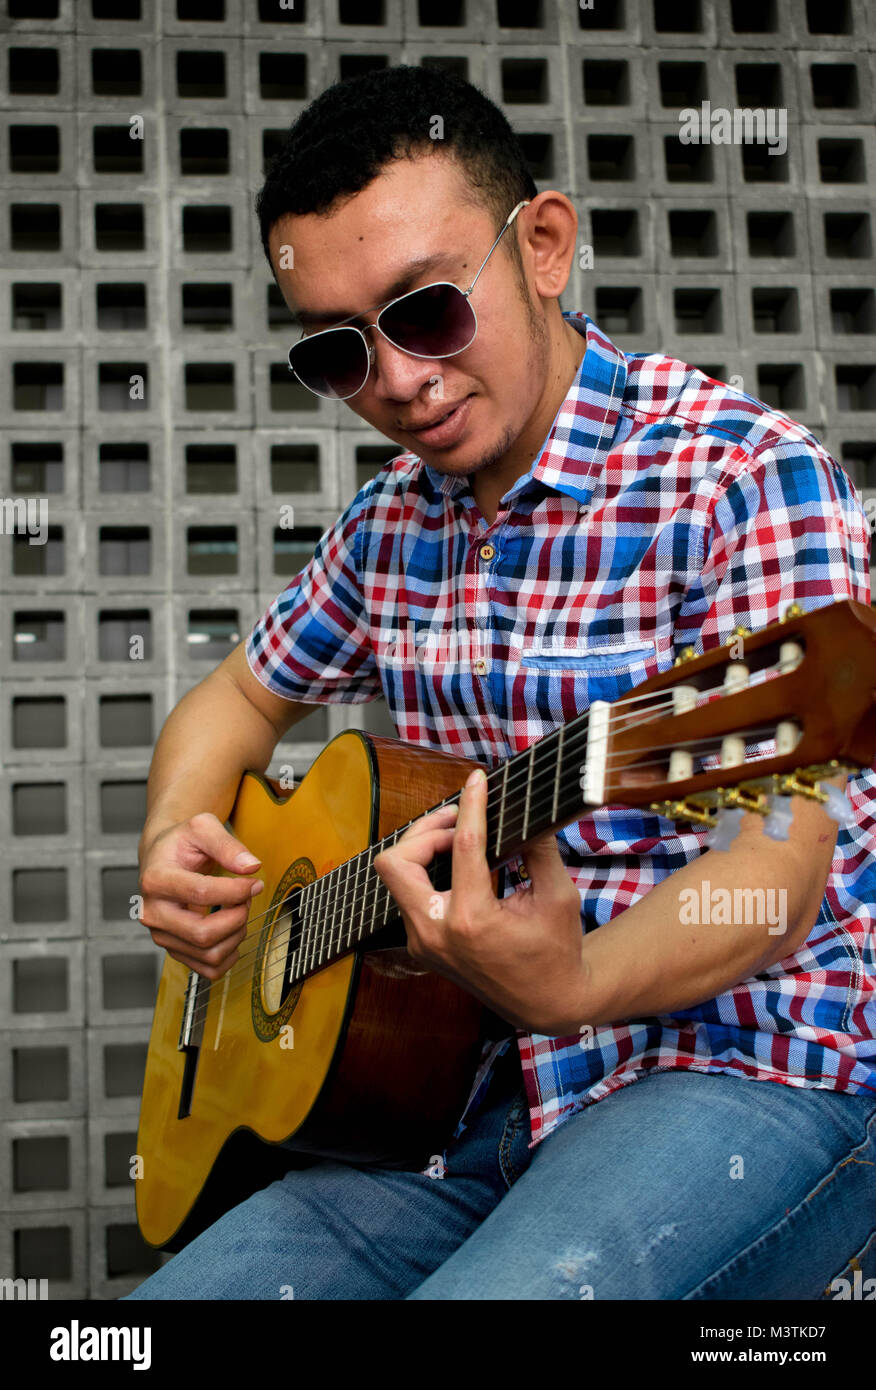 Cool guy playing guitar - Stock Image